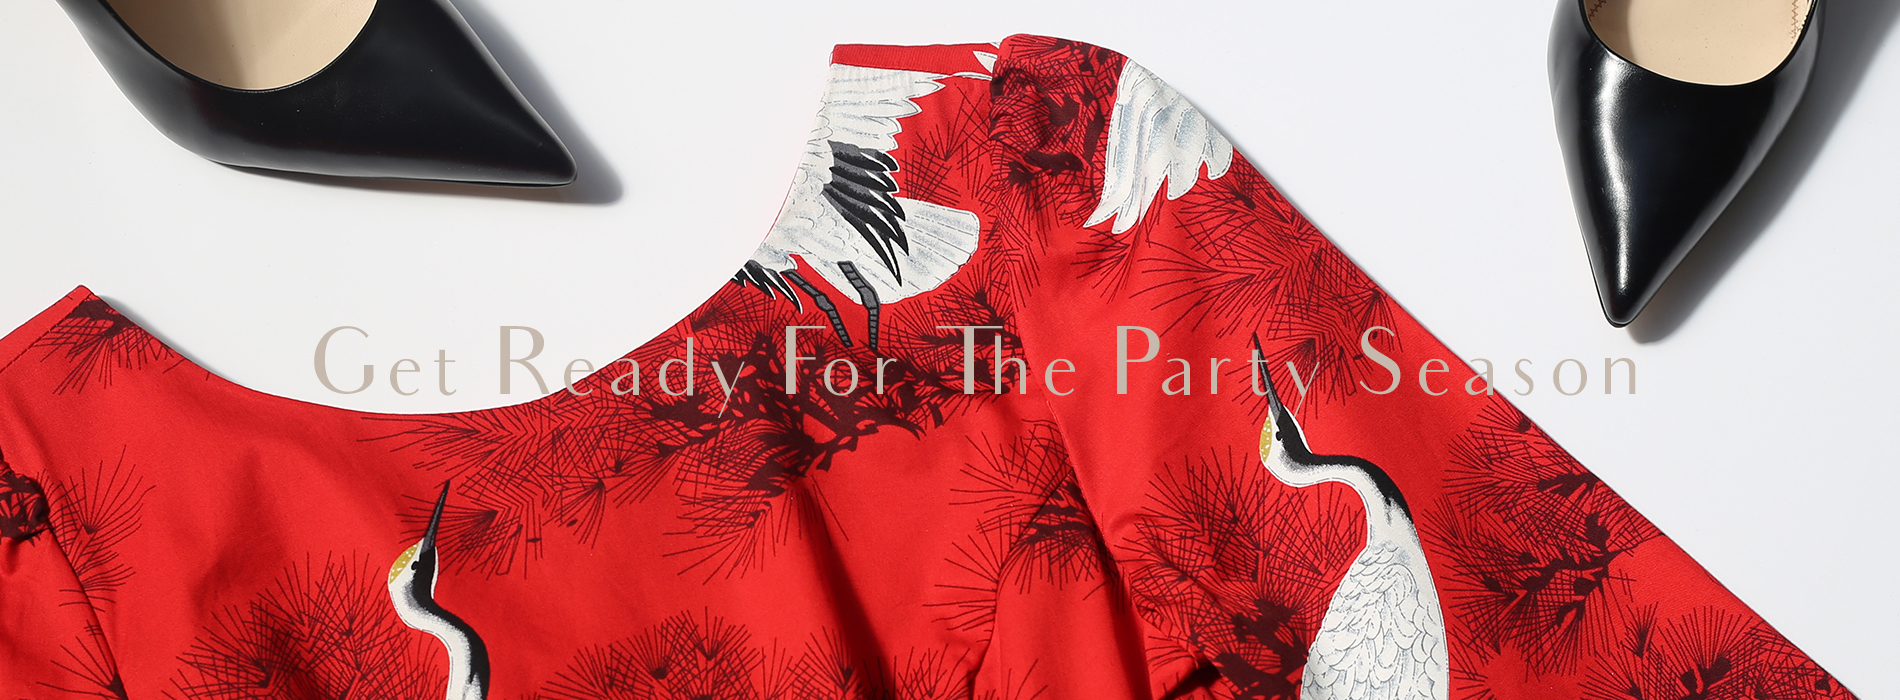 Get Ready For Party Season